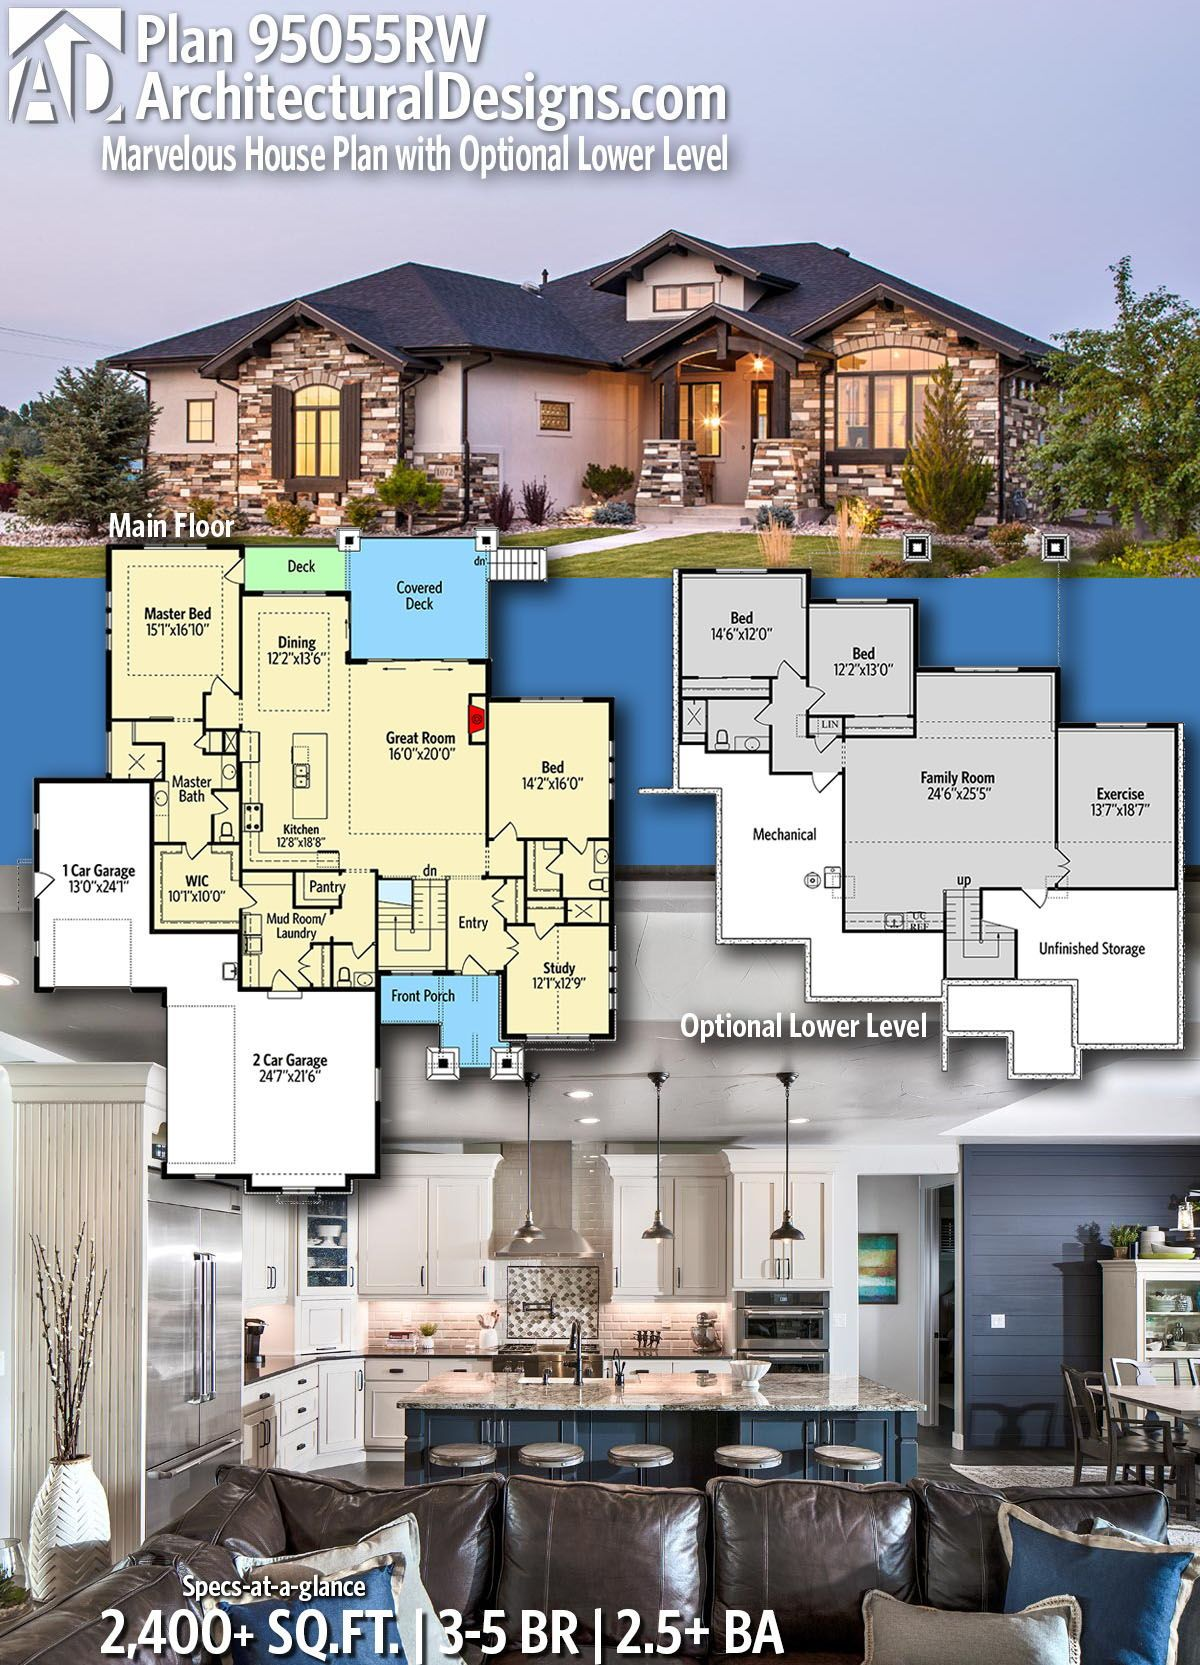 Architectural Designs Home Plan 95055rw Gives You 3 5 Bedrooms 2 5 Baths And 2 400 Sq Ft With An Opti House Blueprints Home Design Floor Plans House Plans